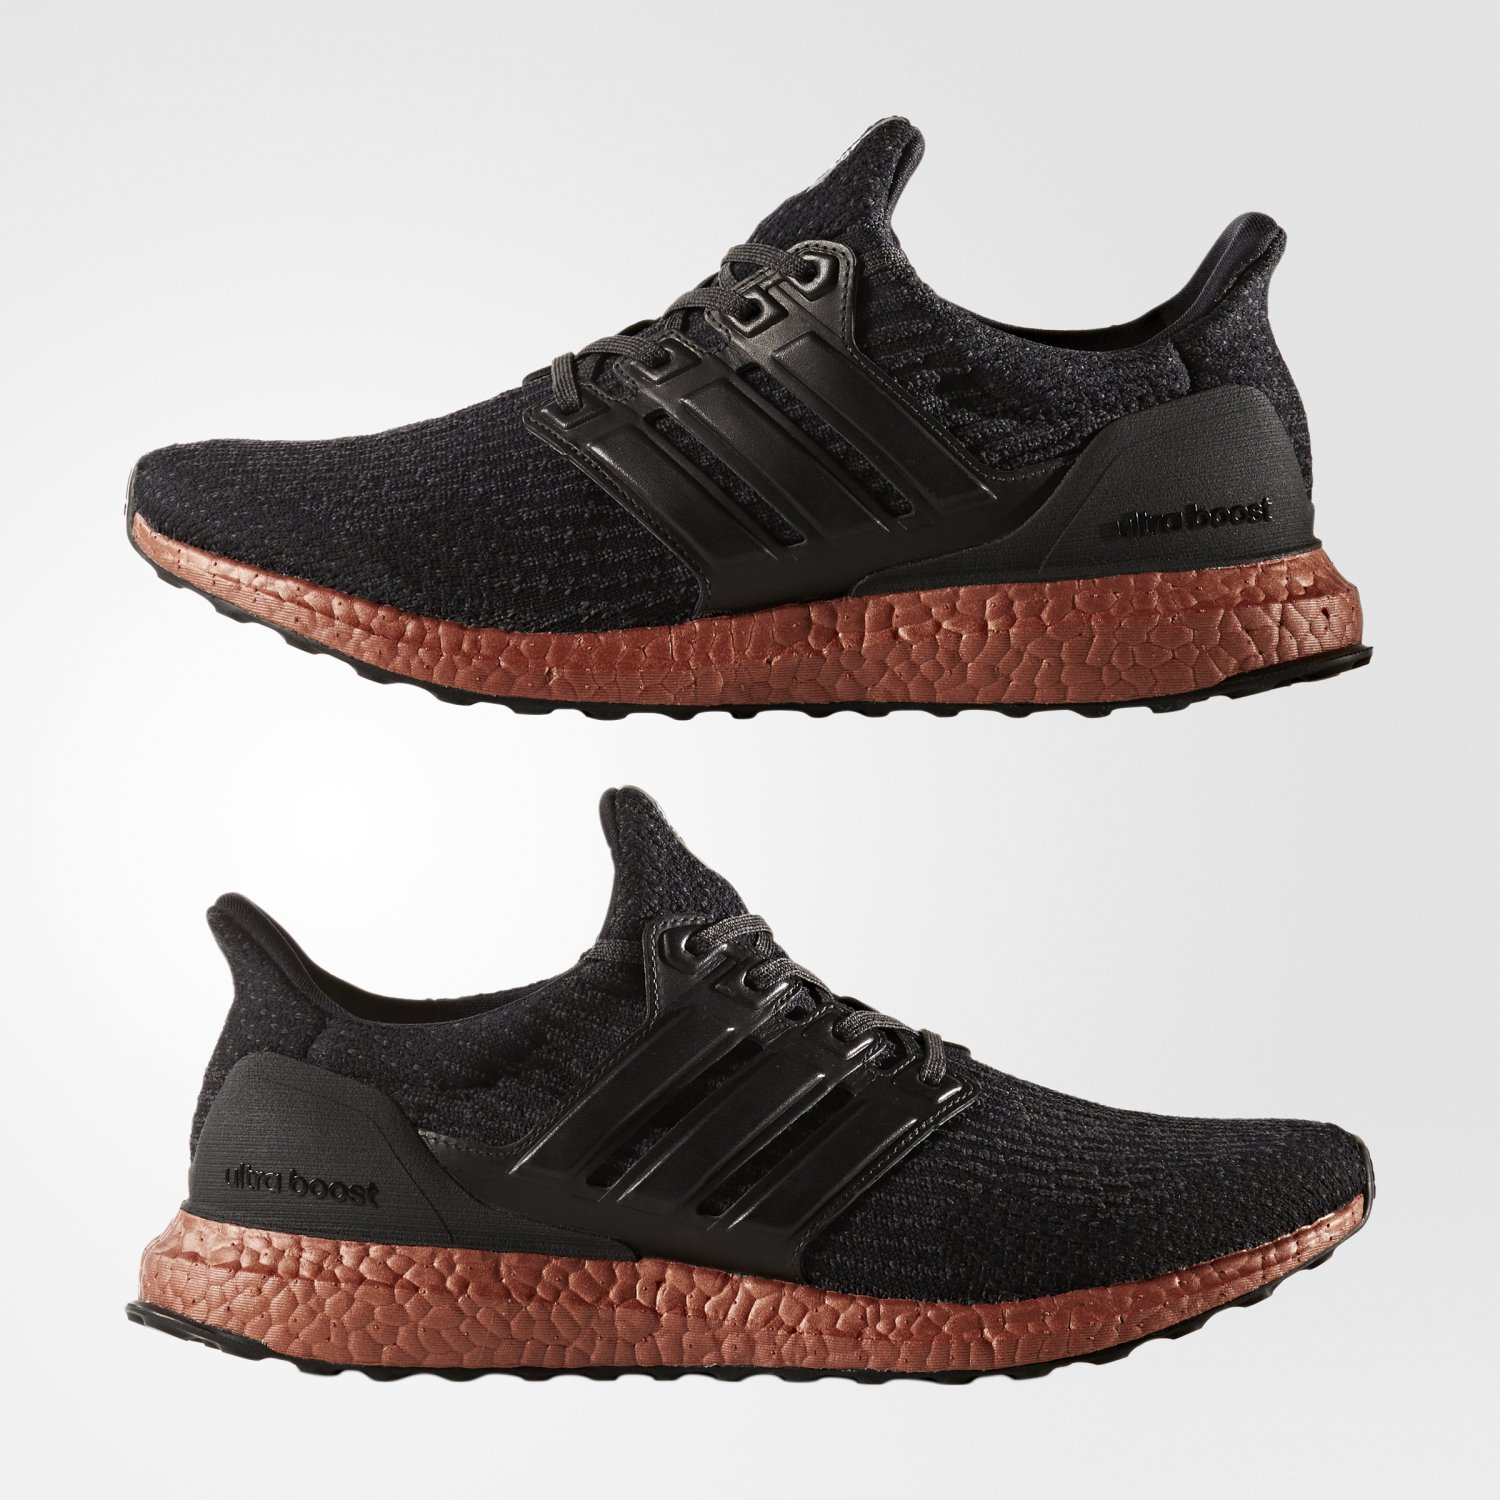 adidas-ultra-boost-tech-rust-release-20170727